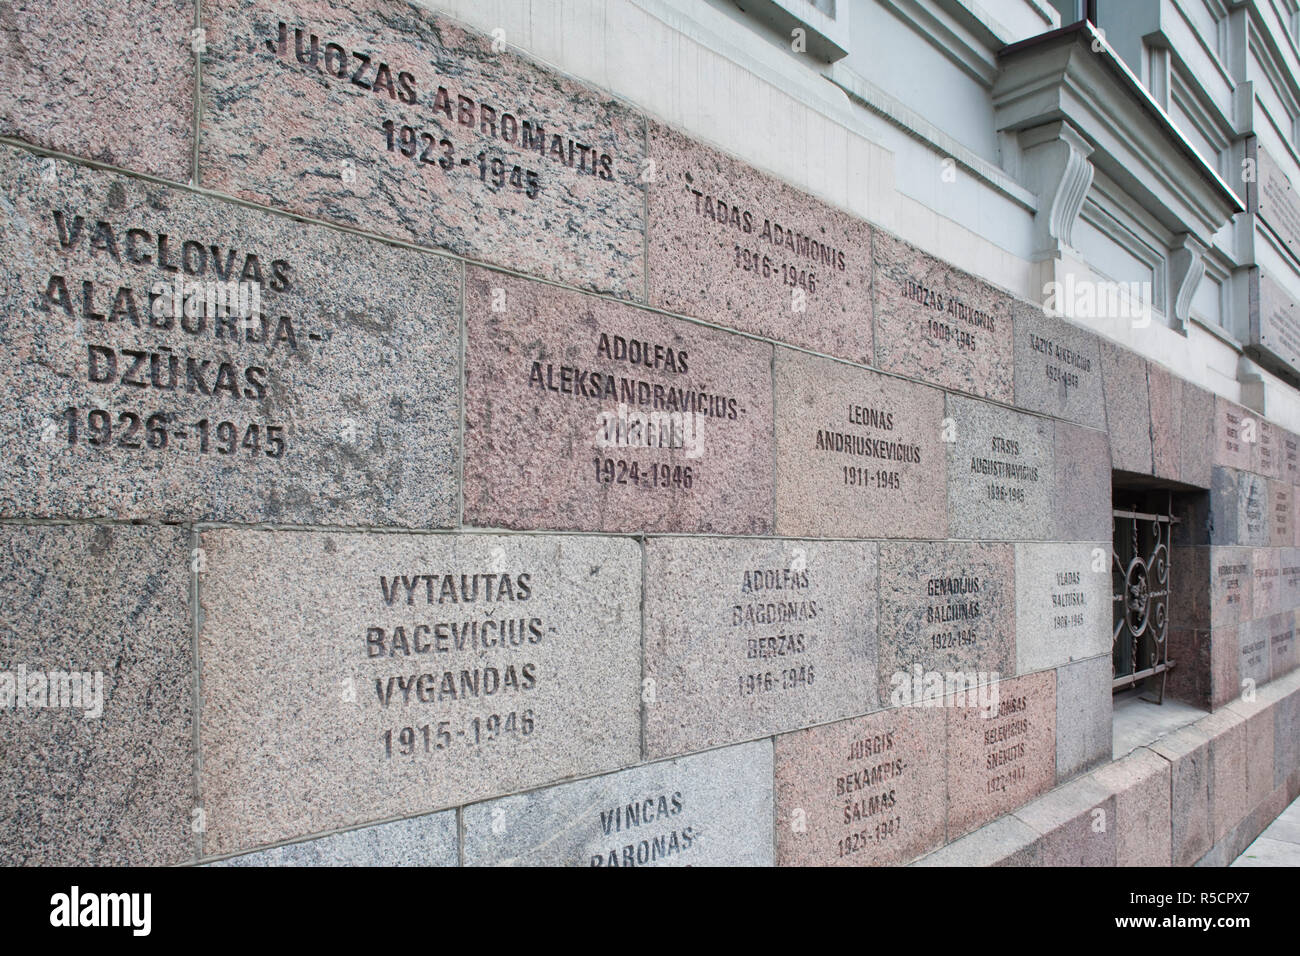 Lithuania, Vilnius, Museum of Genocide Victims, housed in former KGB building, wall memorials - Stock Image